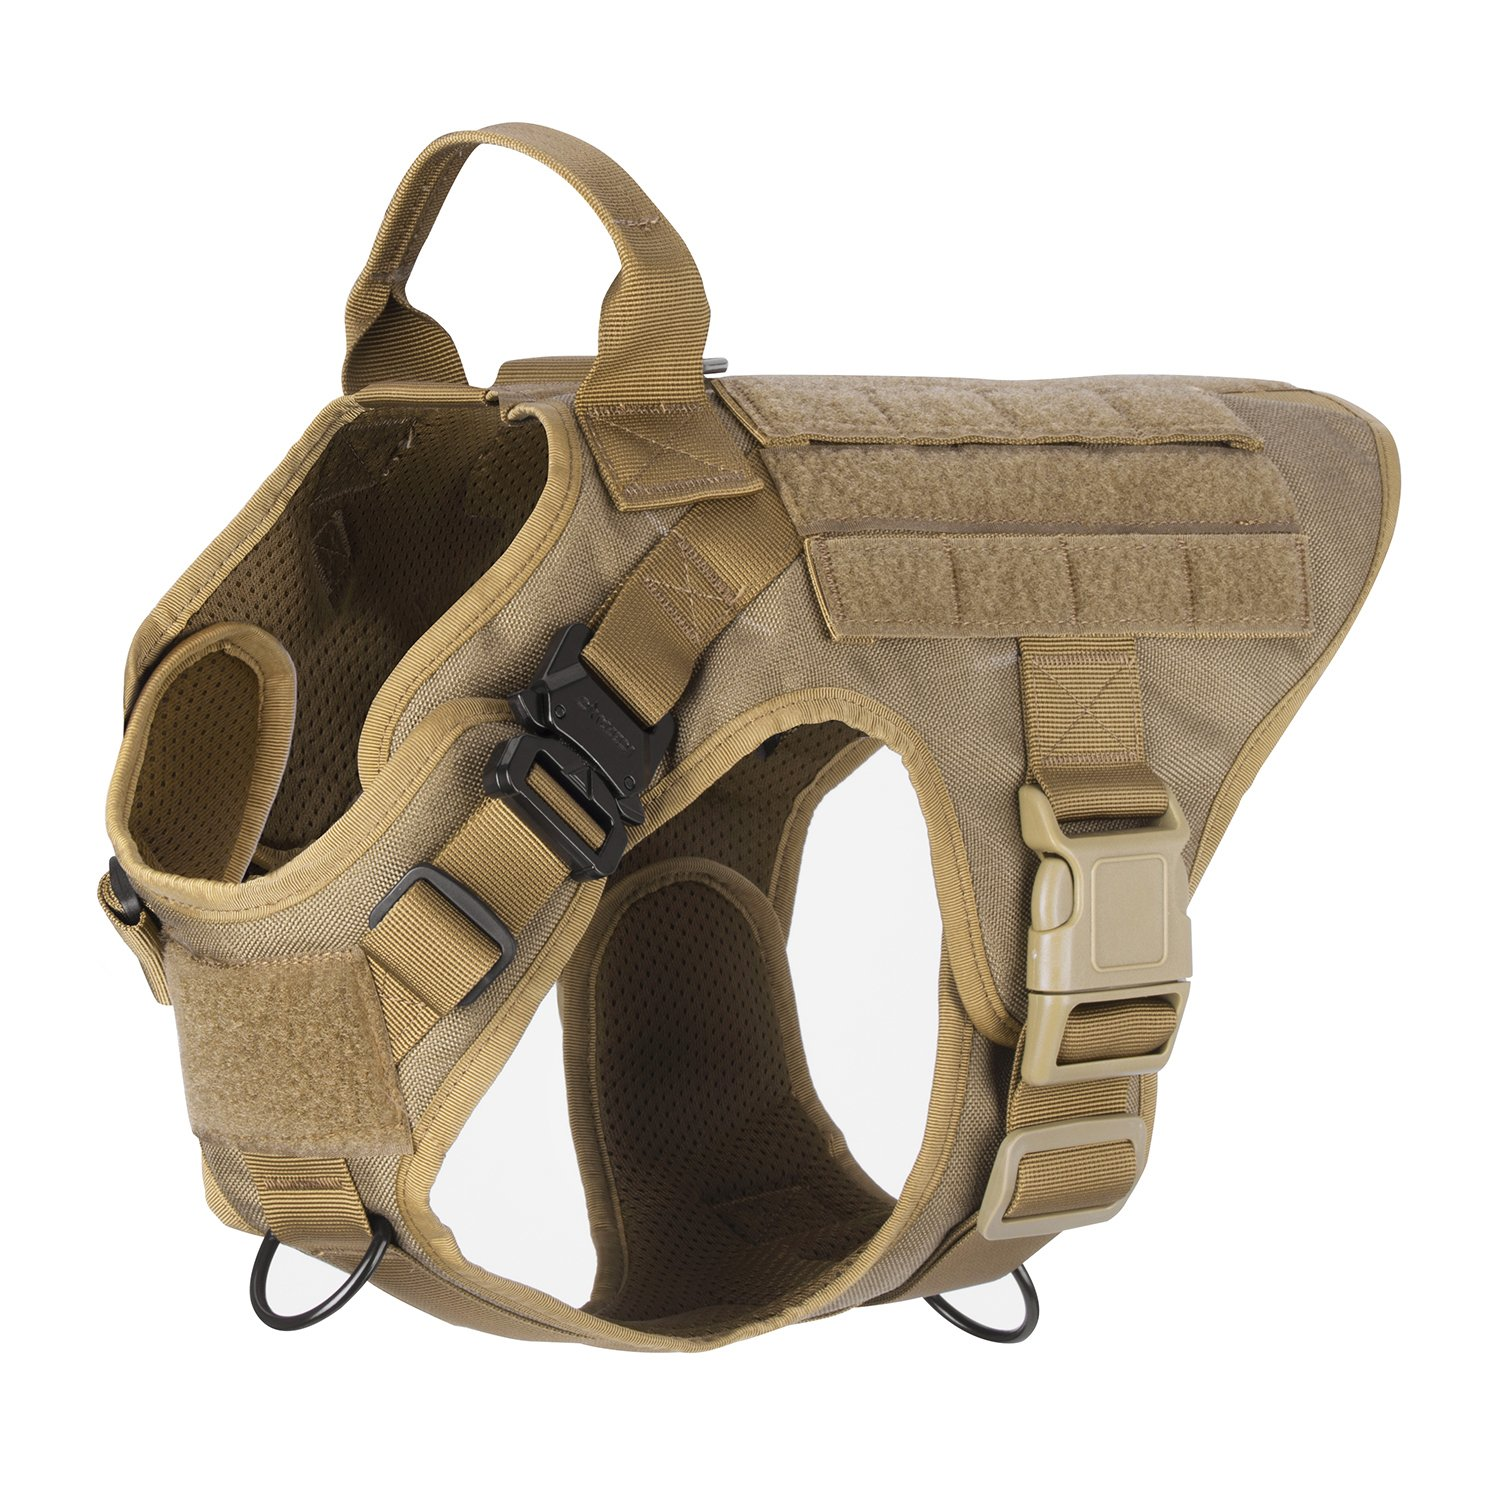 ICEFANG Dog Harness Medium Breed,Tactical Molle Dog Vest,No Pull Front Clip,Unbreakable Quick Release Metal Buckle Snap-proof (M 25''-30'' Girth), CB-Molle Half Body